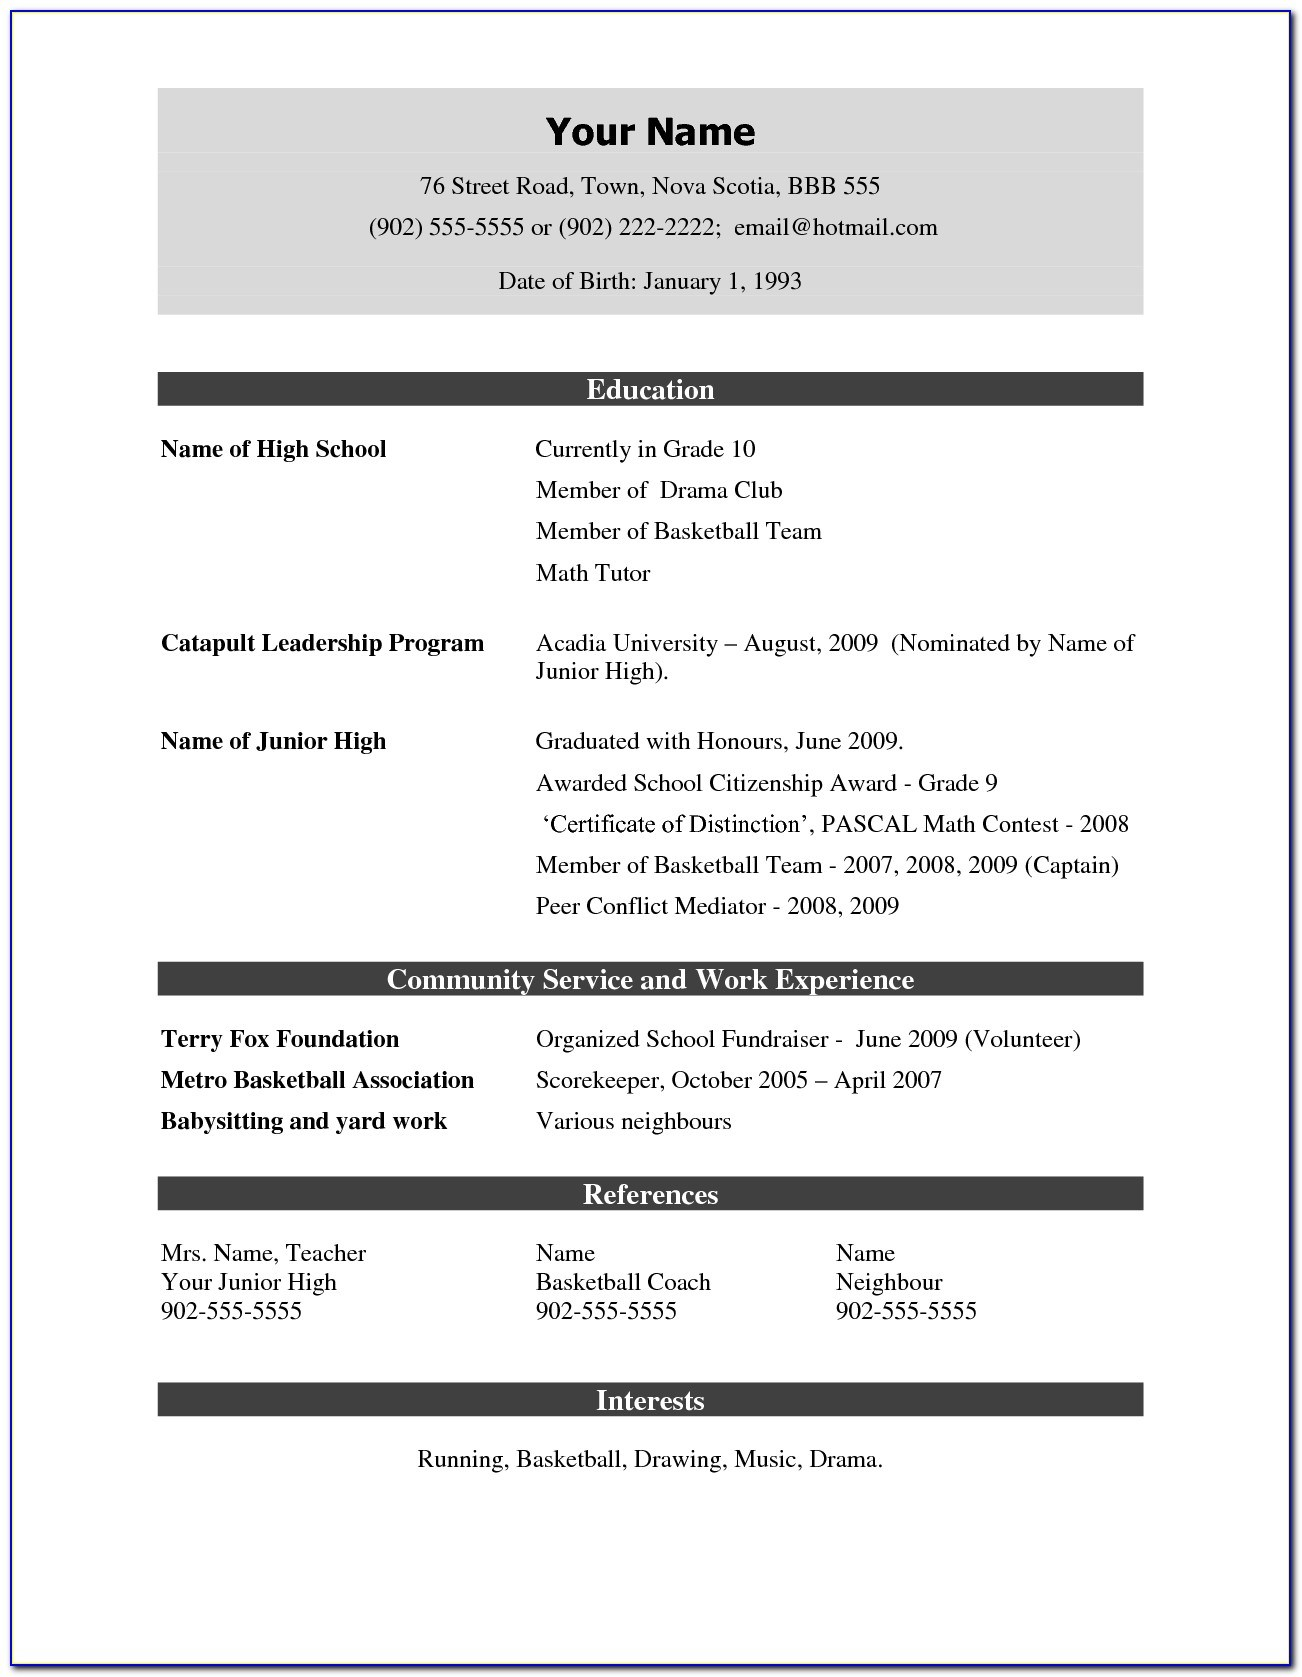 free cv format pdf vincegray2014 resume executive director mental health technician Resume Free Resume Format Pdf